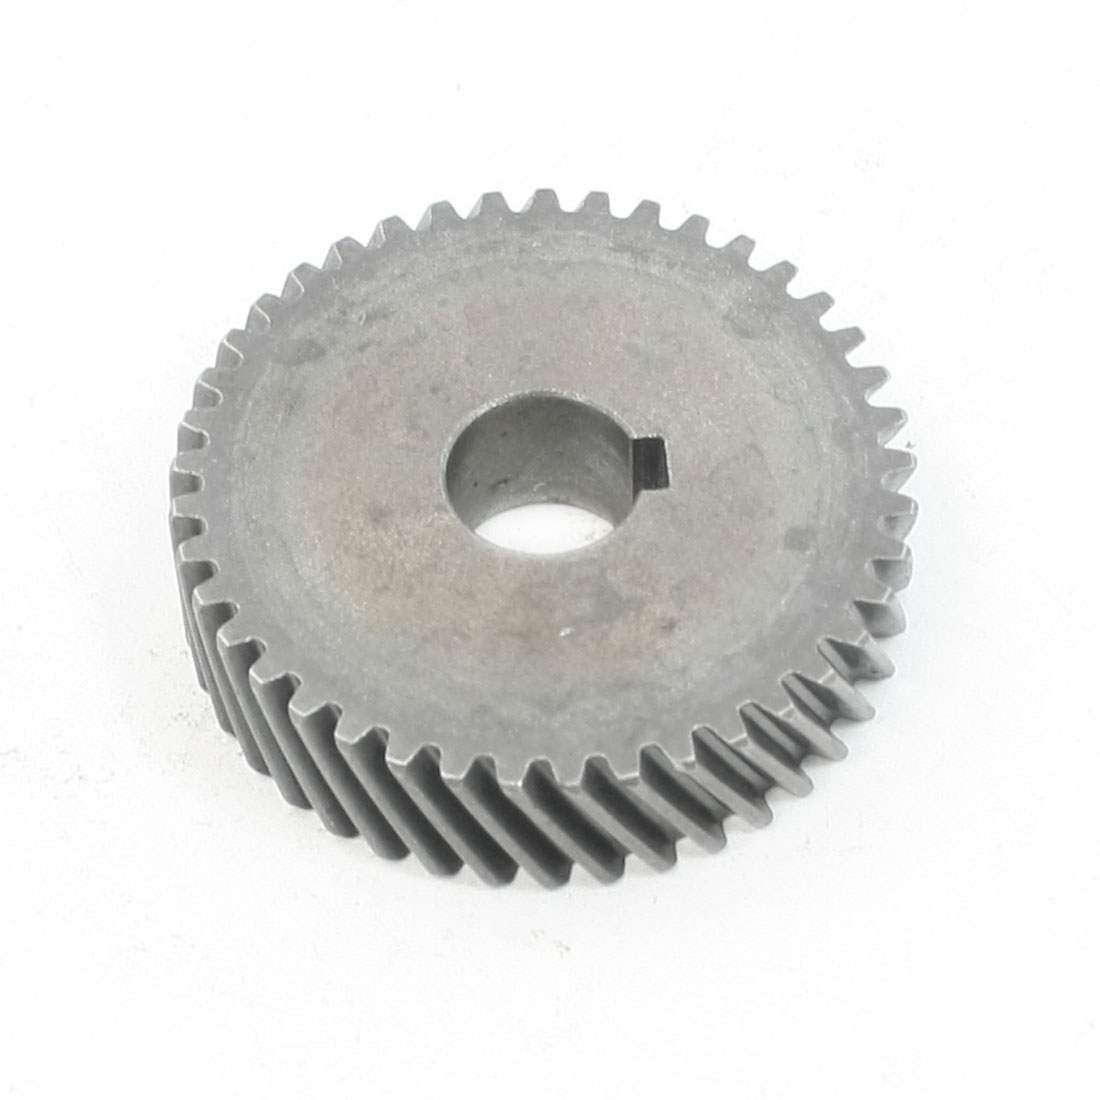 Power Tool Spare Part Helical Gear Wheel for Ken C7 Circular Saw